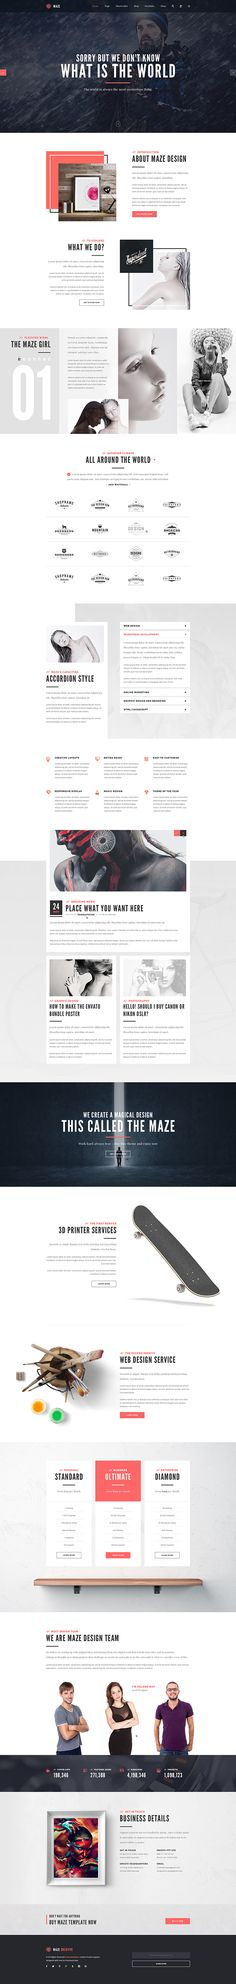 Maze | Creative Agency PSD Template on Behance